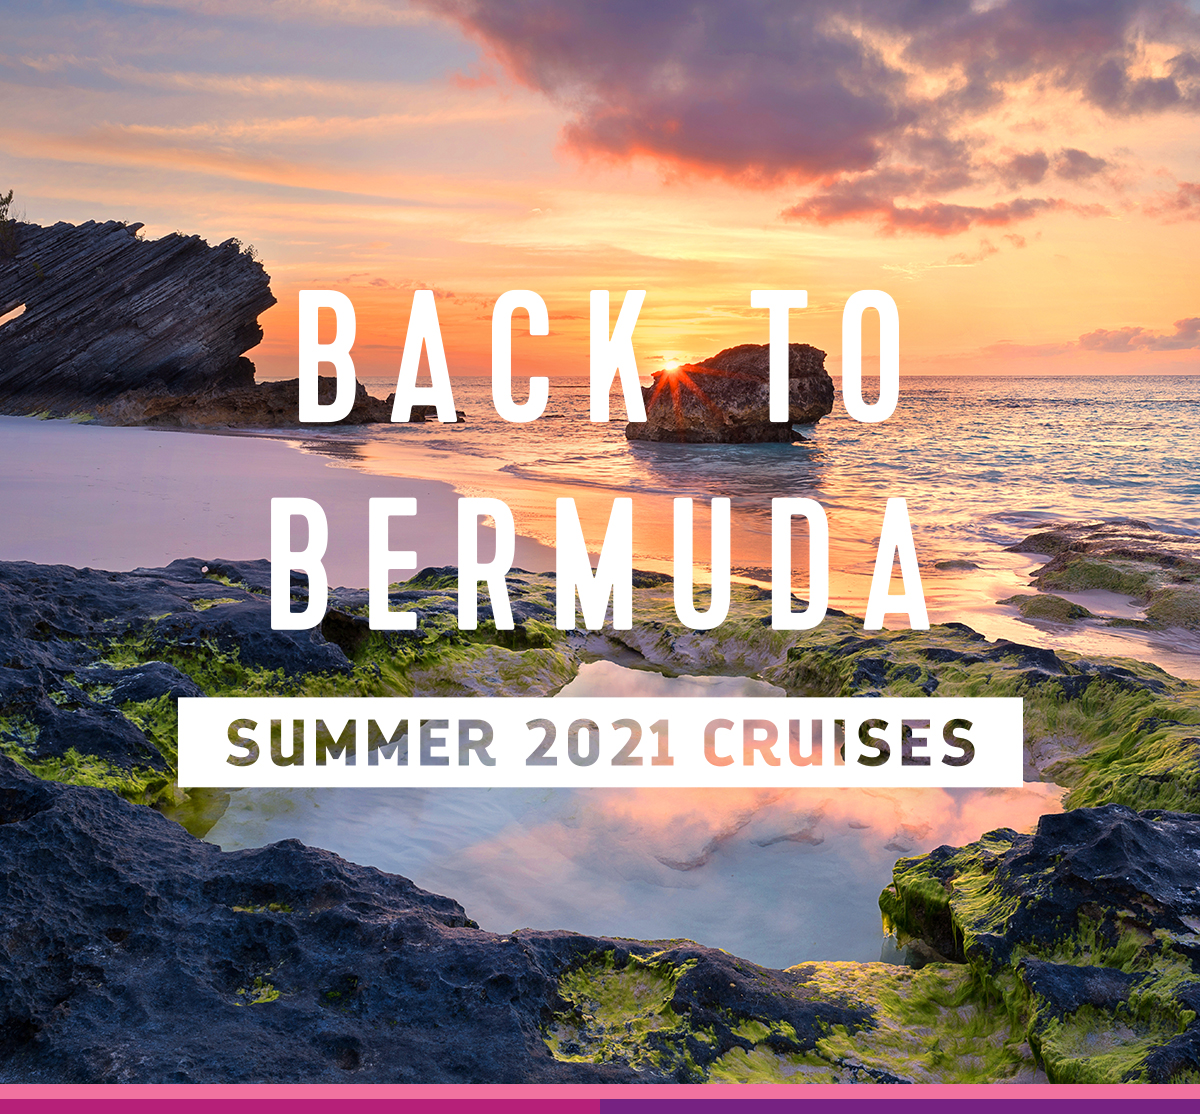 Royal Caribbean Begins Cruises From Bermuda Beginning Summer 2021!